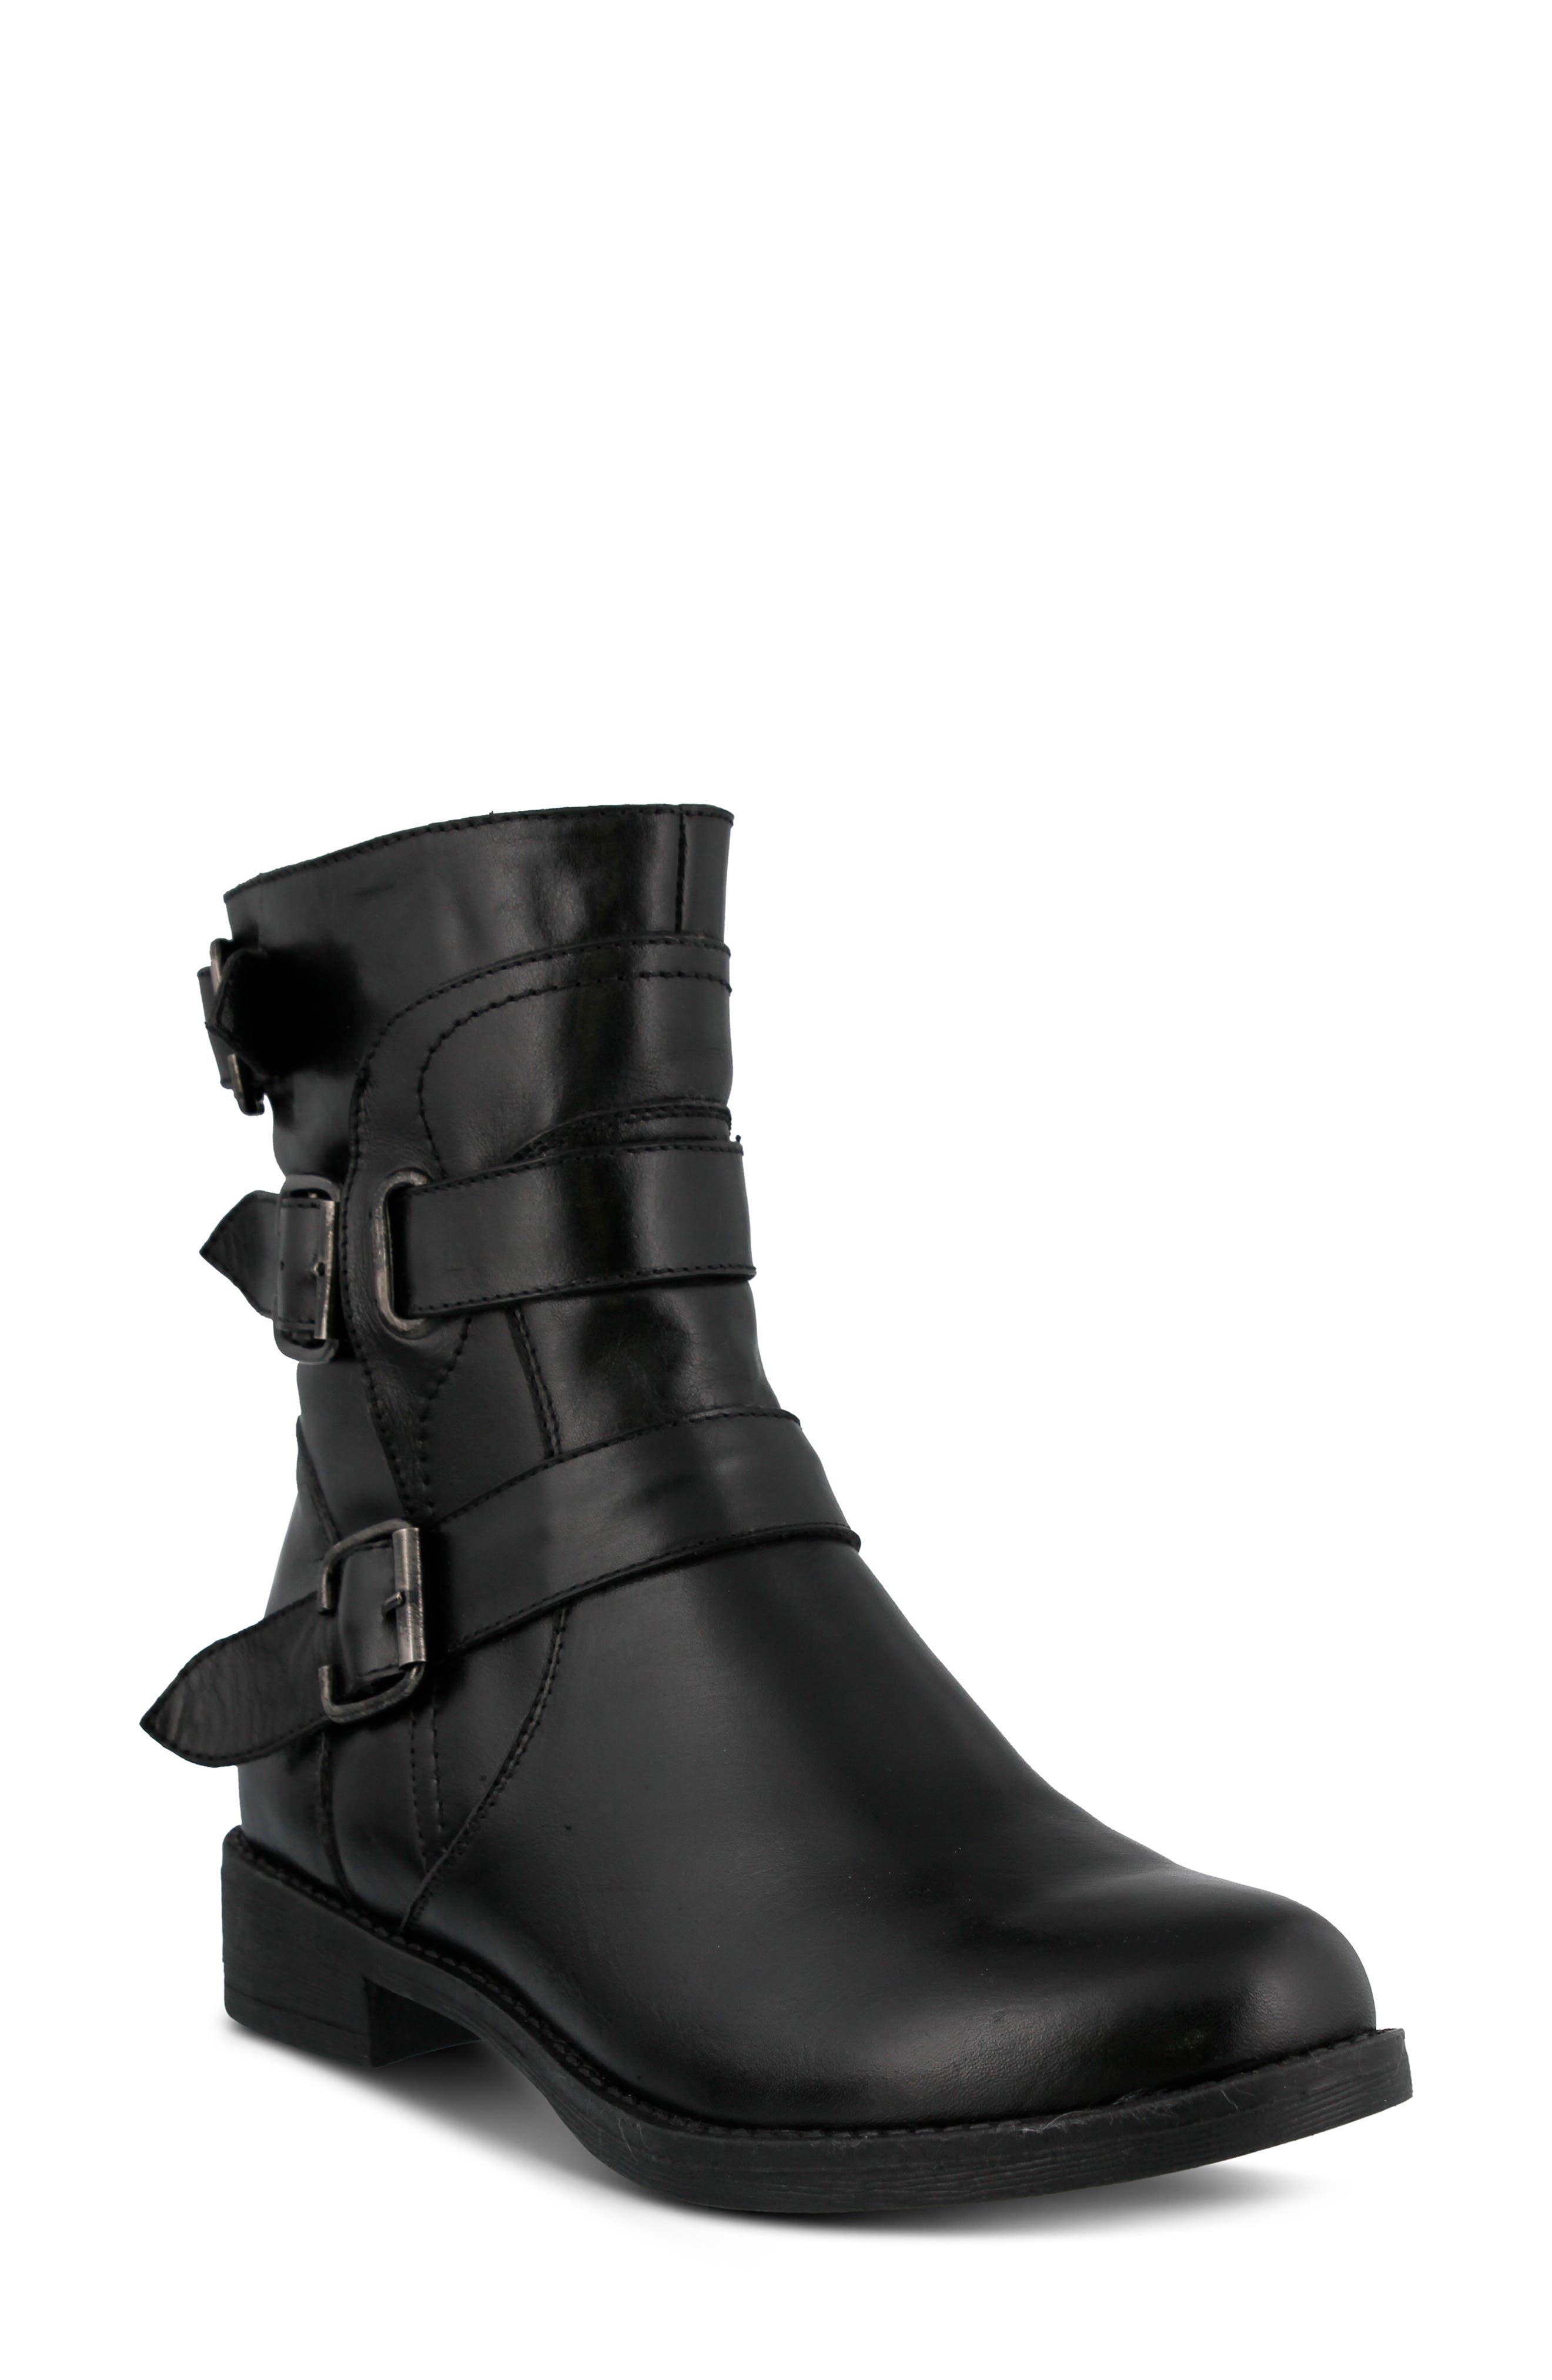 Diony Engineer Bootie,                             Main thumbnail 1, color,                             BLACK LEATHER